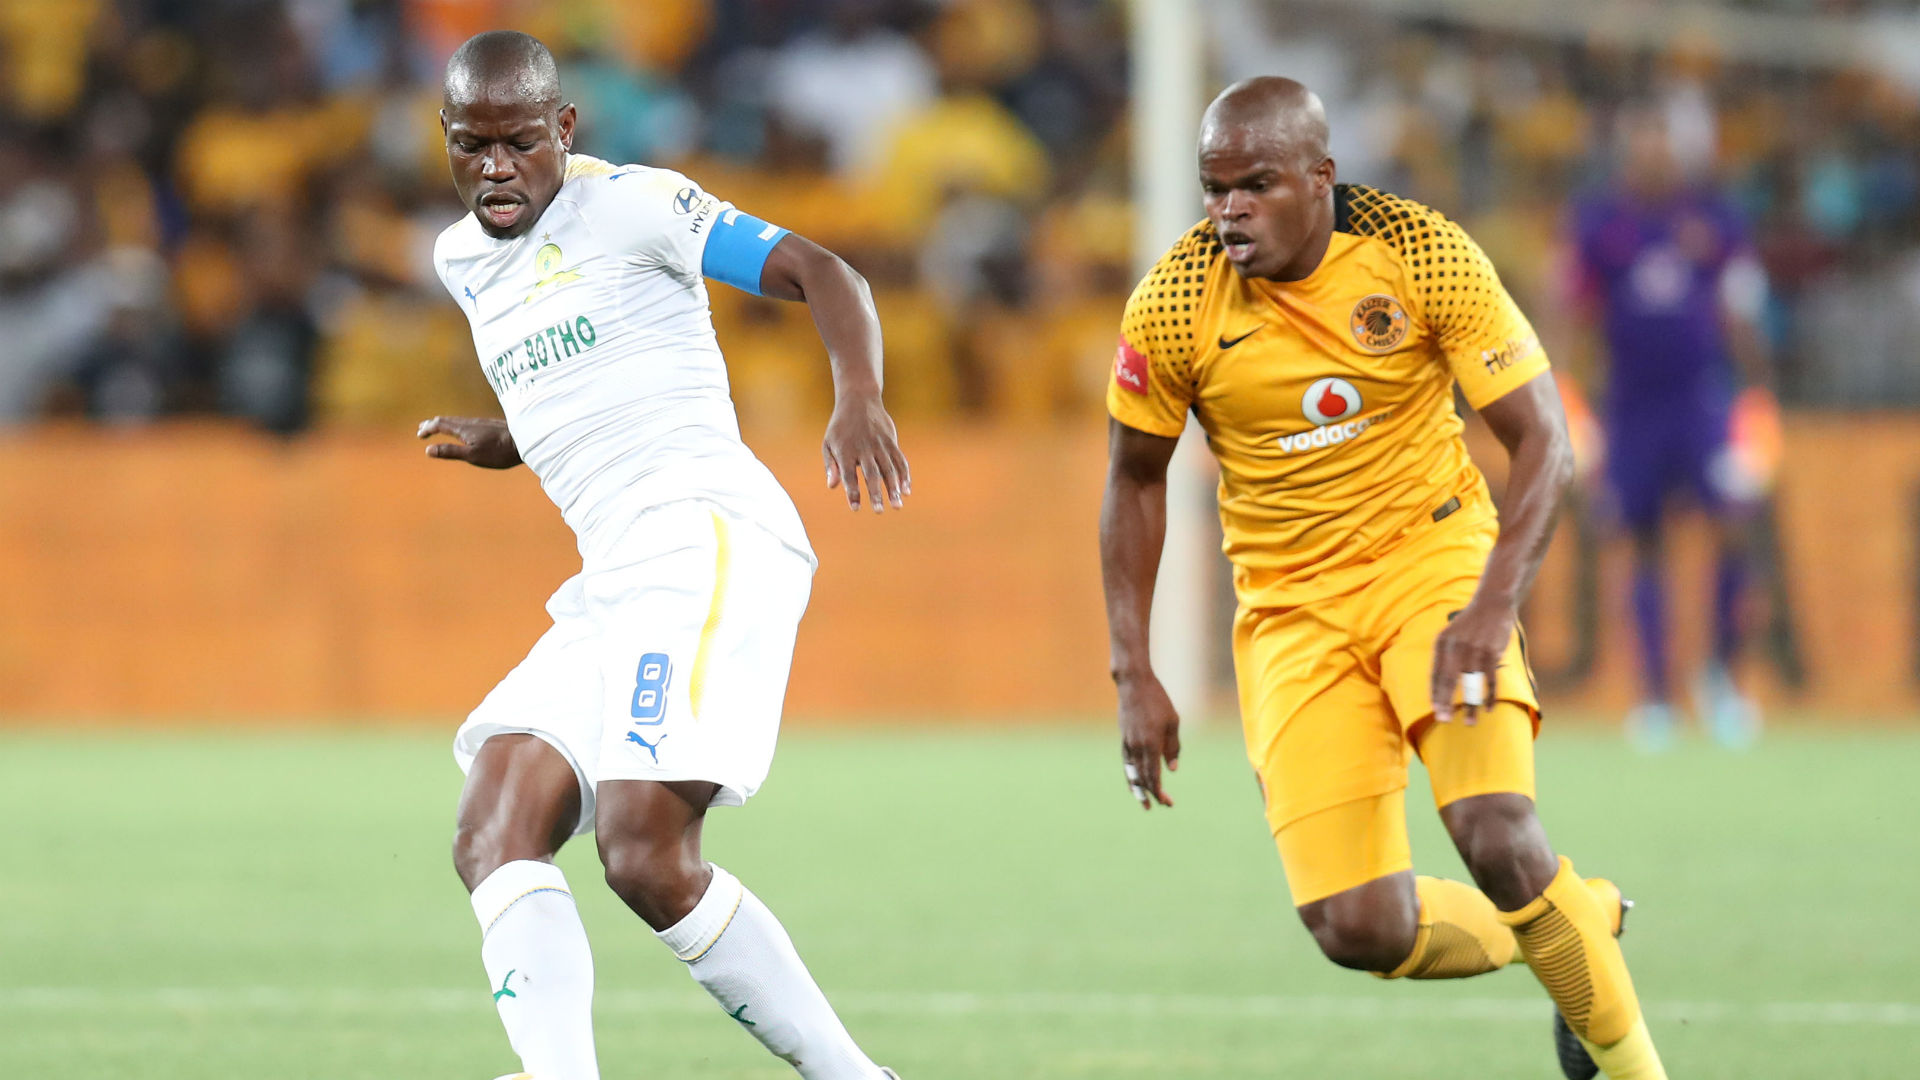 Hlompho Kekana and Willard Katsande - Kaizer Chiefs v Sundowns